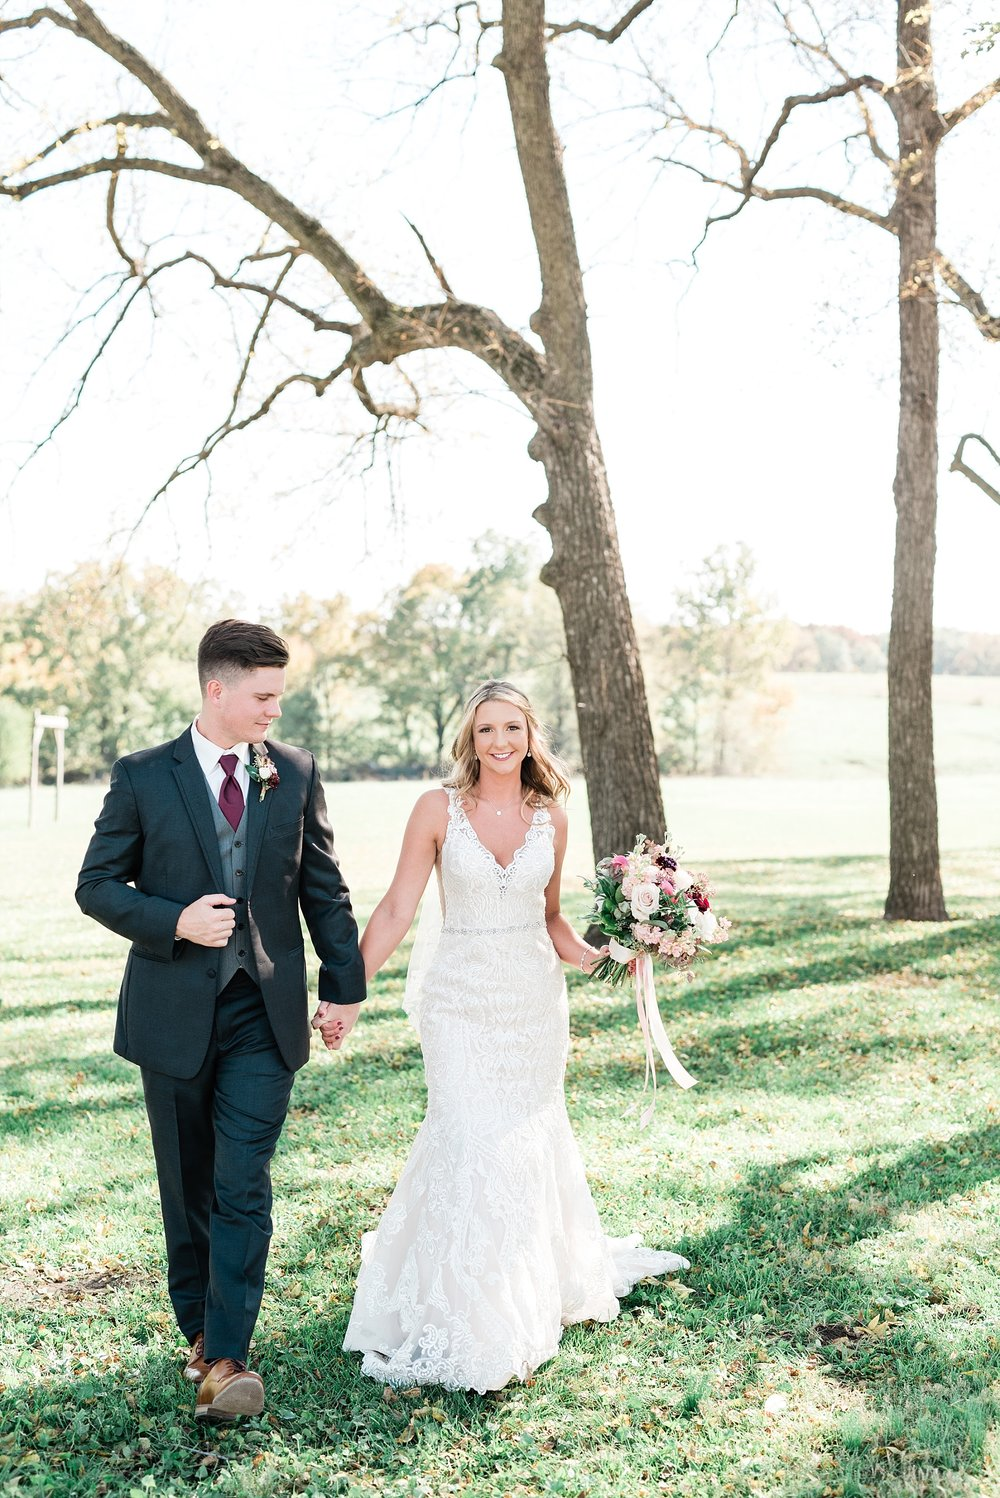 Golden Autumn Outdoor Wedding with Ivory, Bergundy, and Blush Color Palette at Blue Bell Farms  by Kelsi Kliethermes Photography_0075.jpg